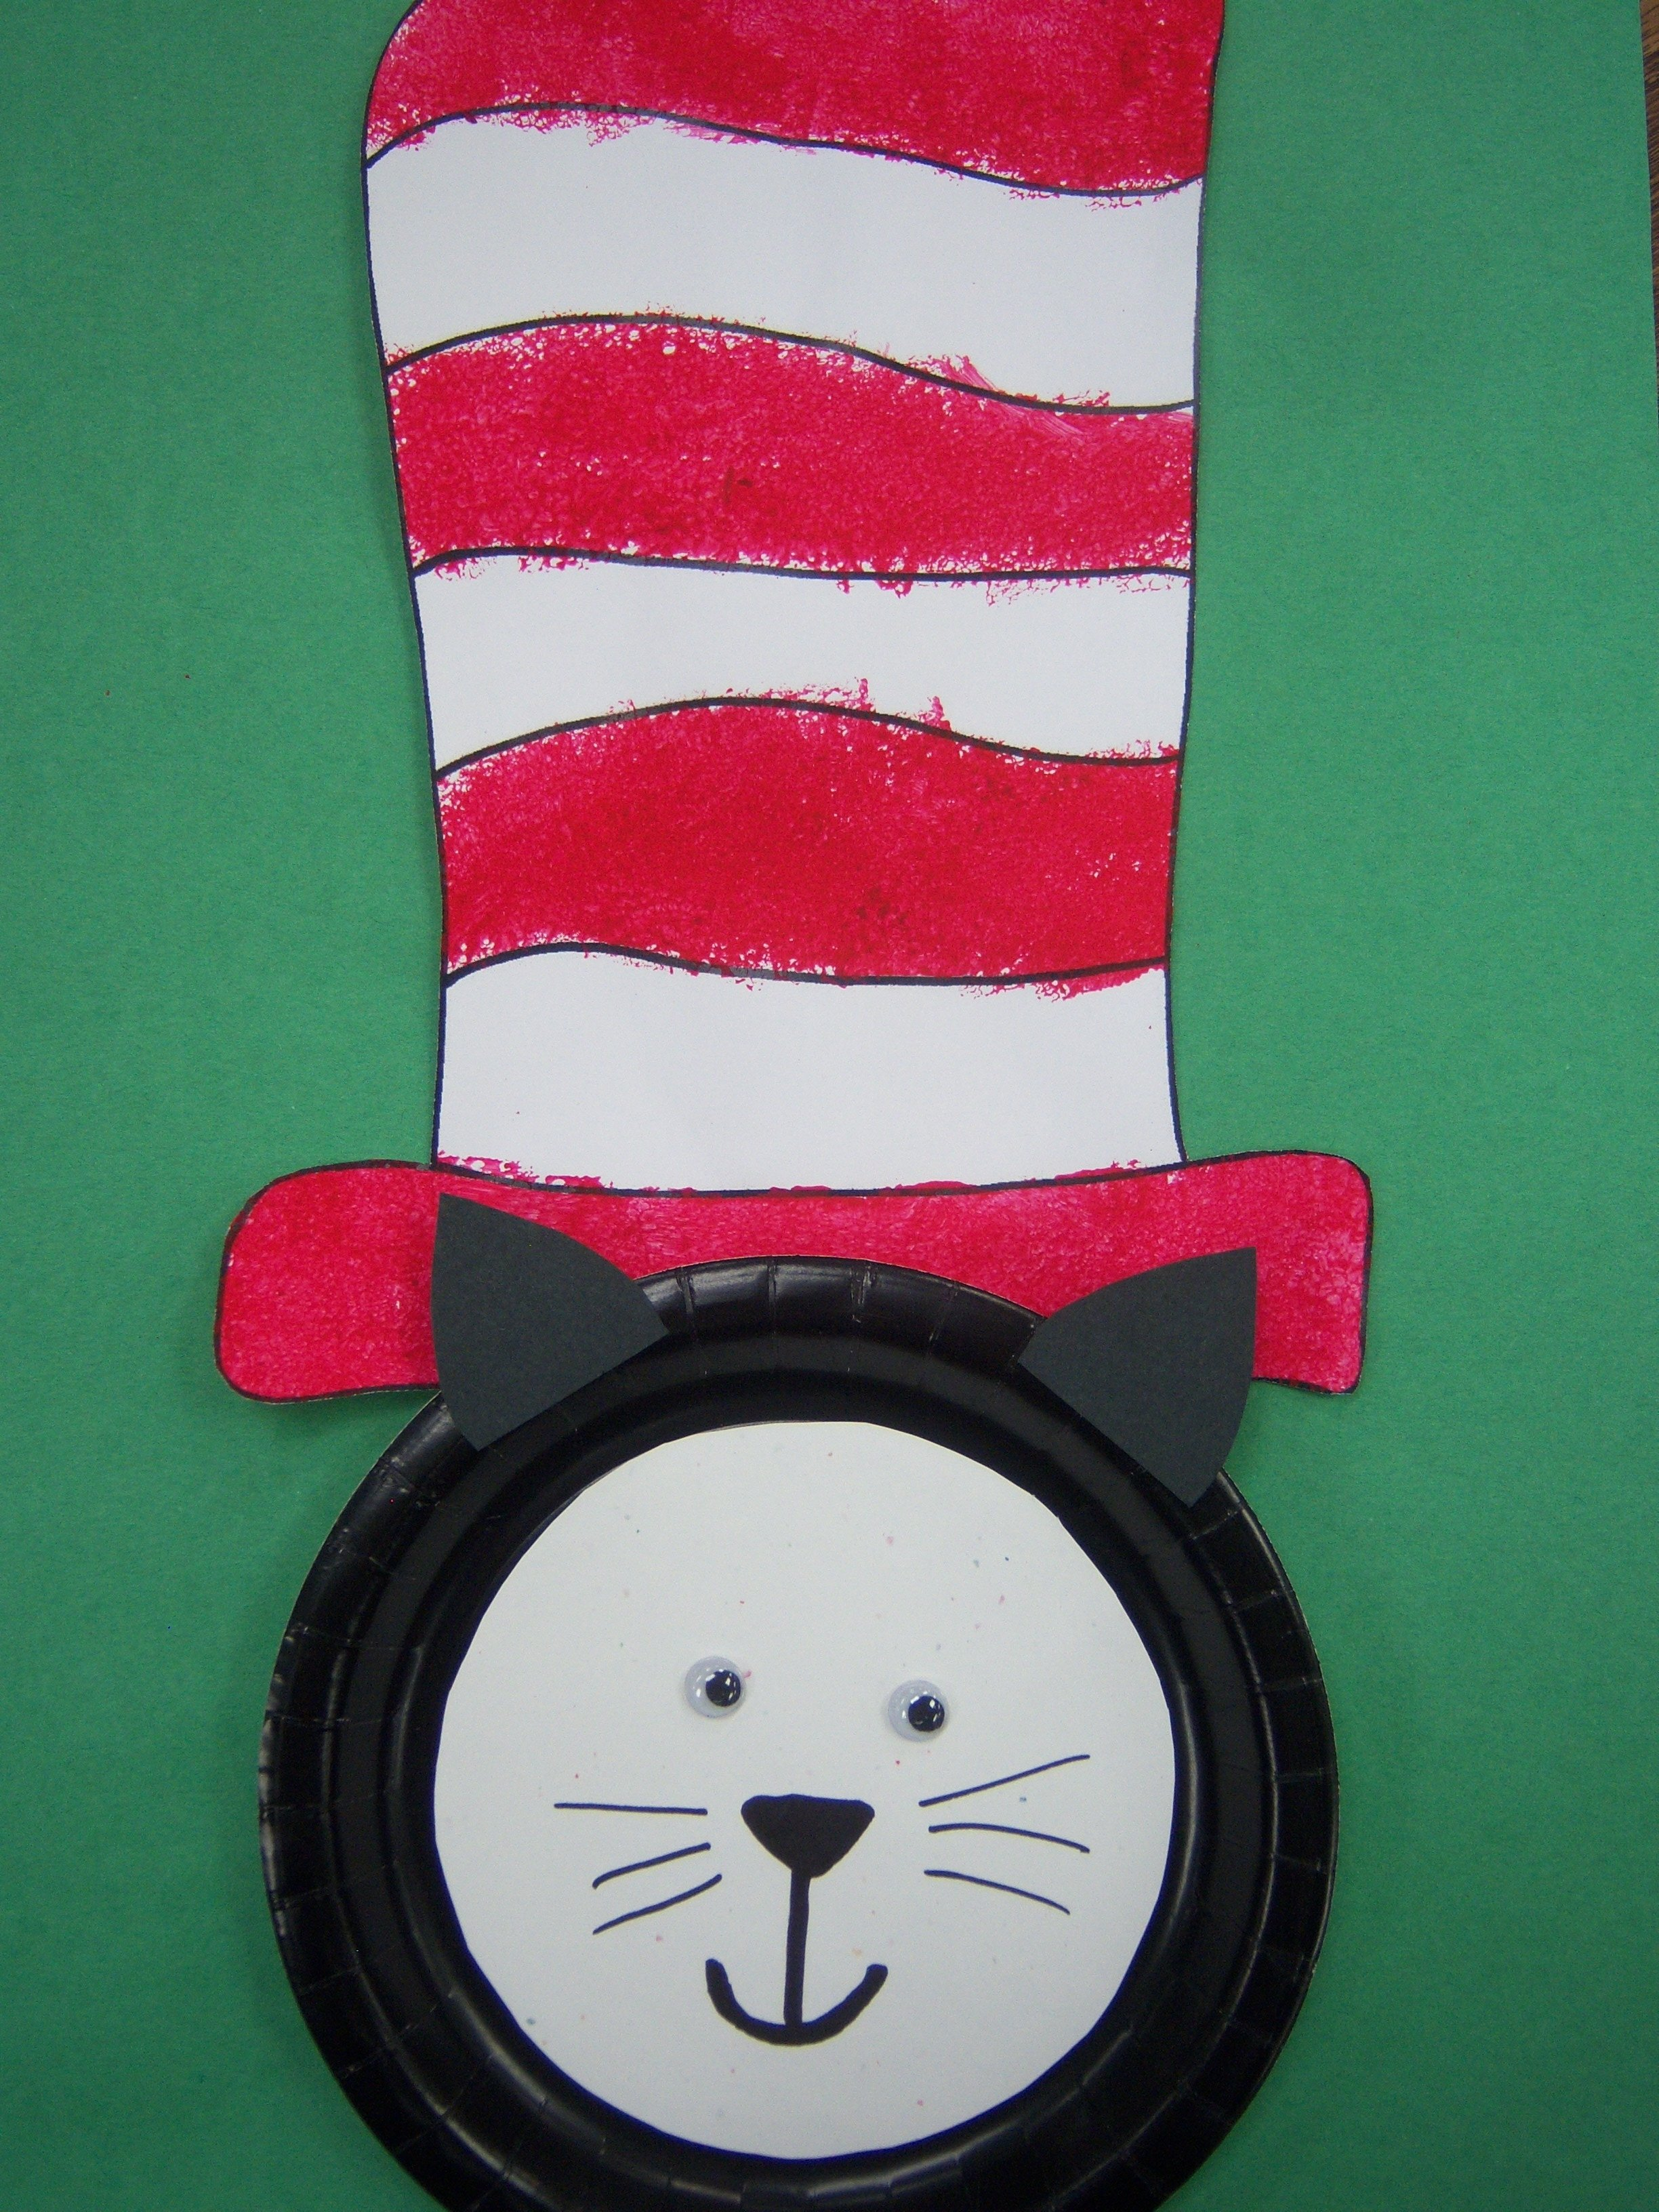 10 Most Popular Cat In The Hat Craft Ideas kids art dr seuss storytime katie 2020